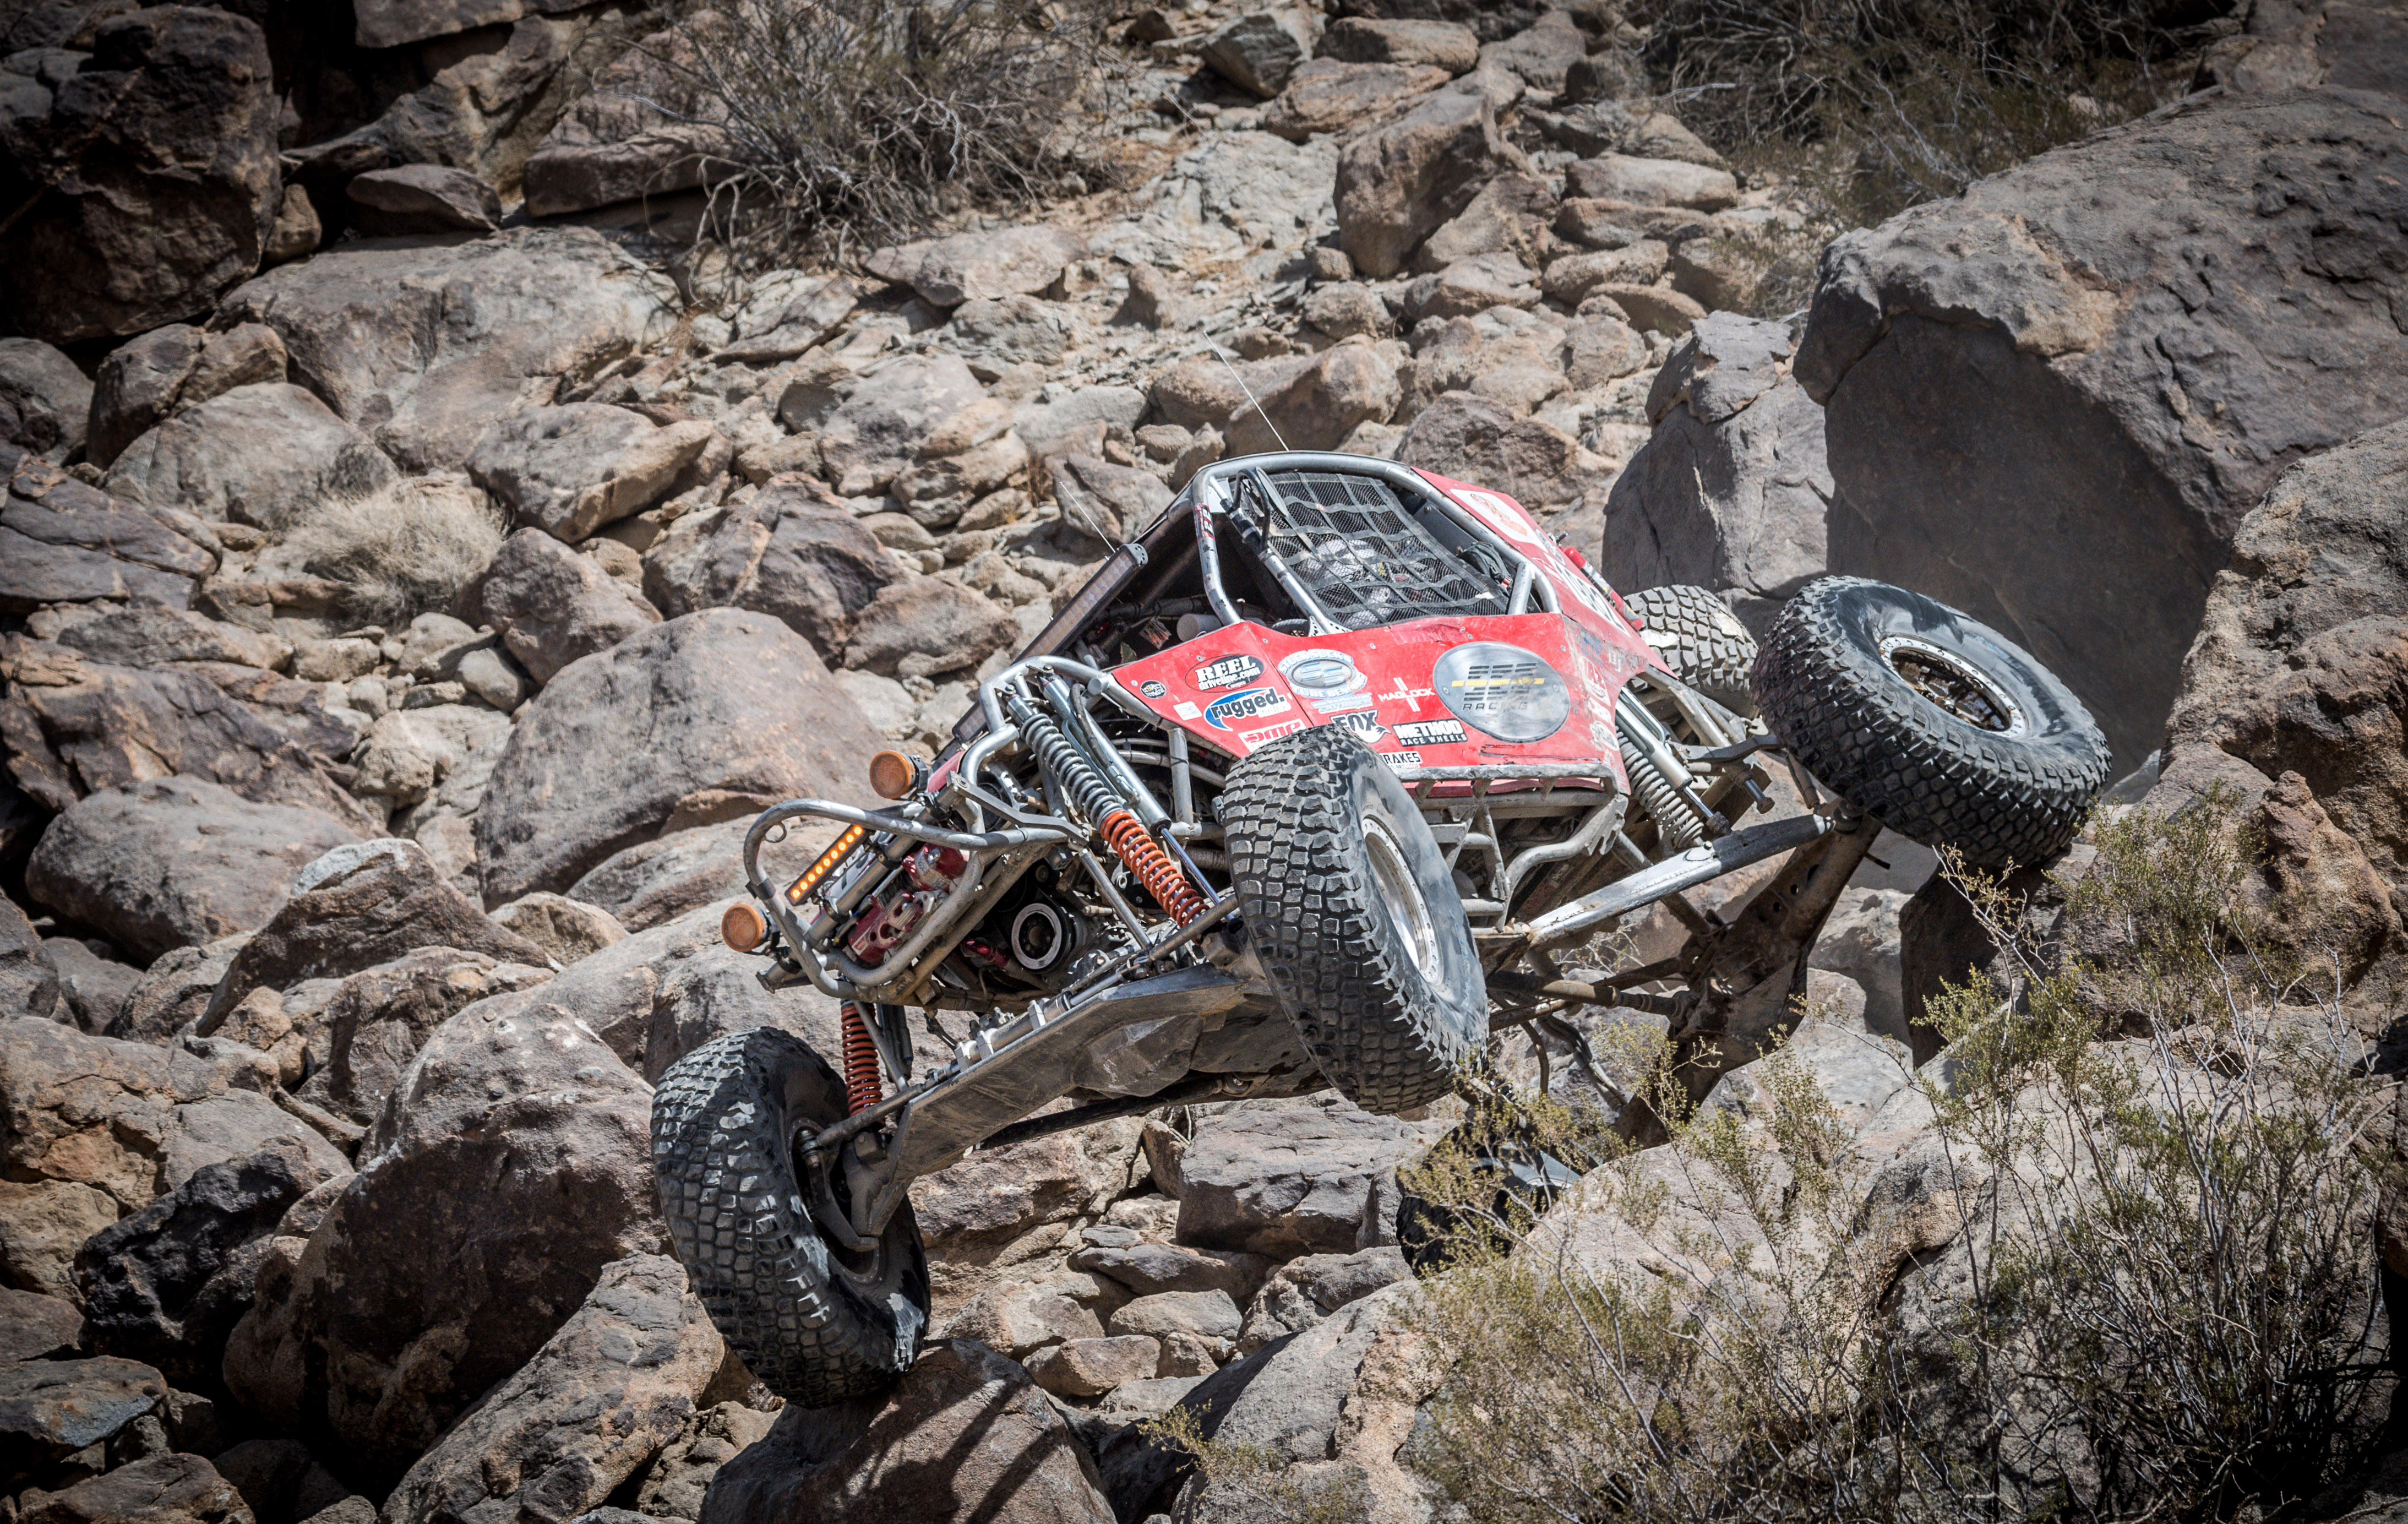 King of the Hammers buggy